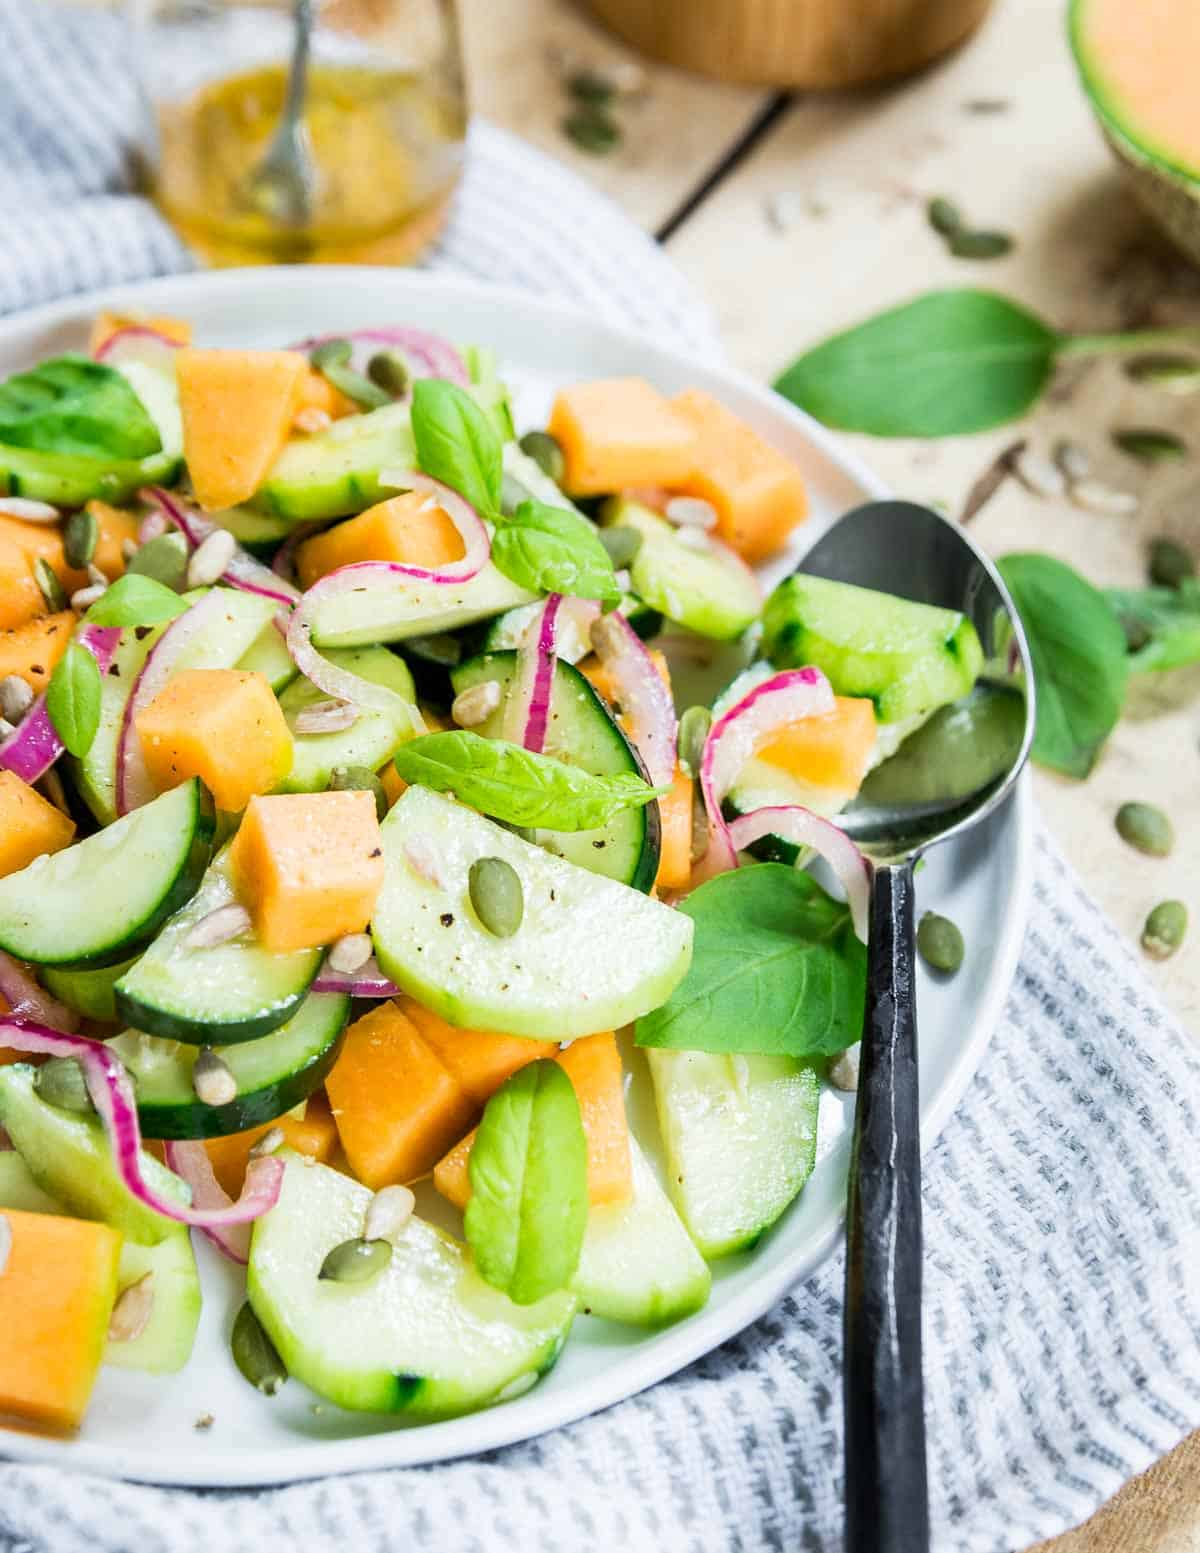 Cucumber melon salad is light and refreshing for an easy side dish to any summer meal.